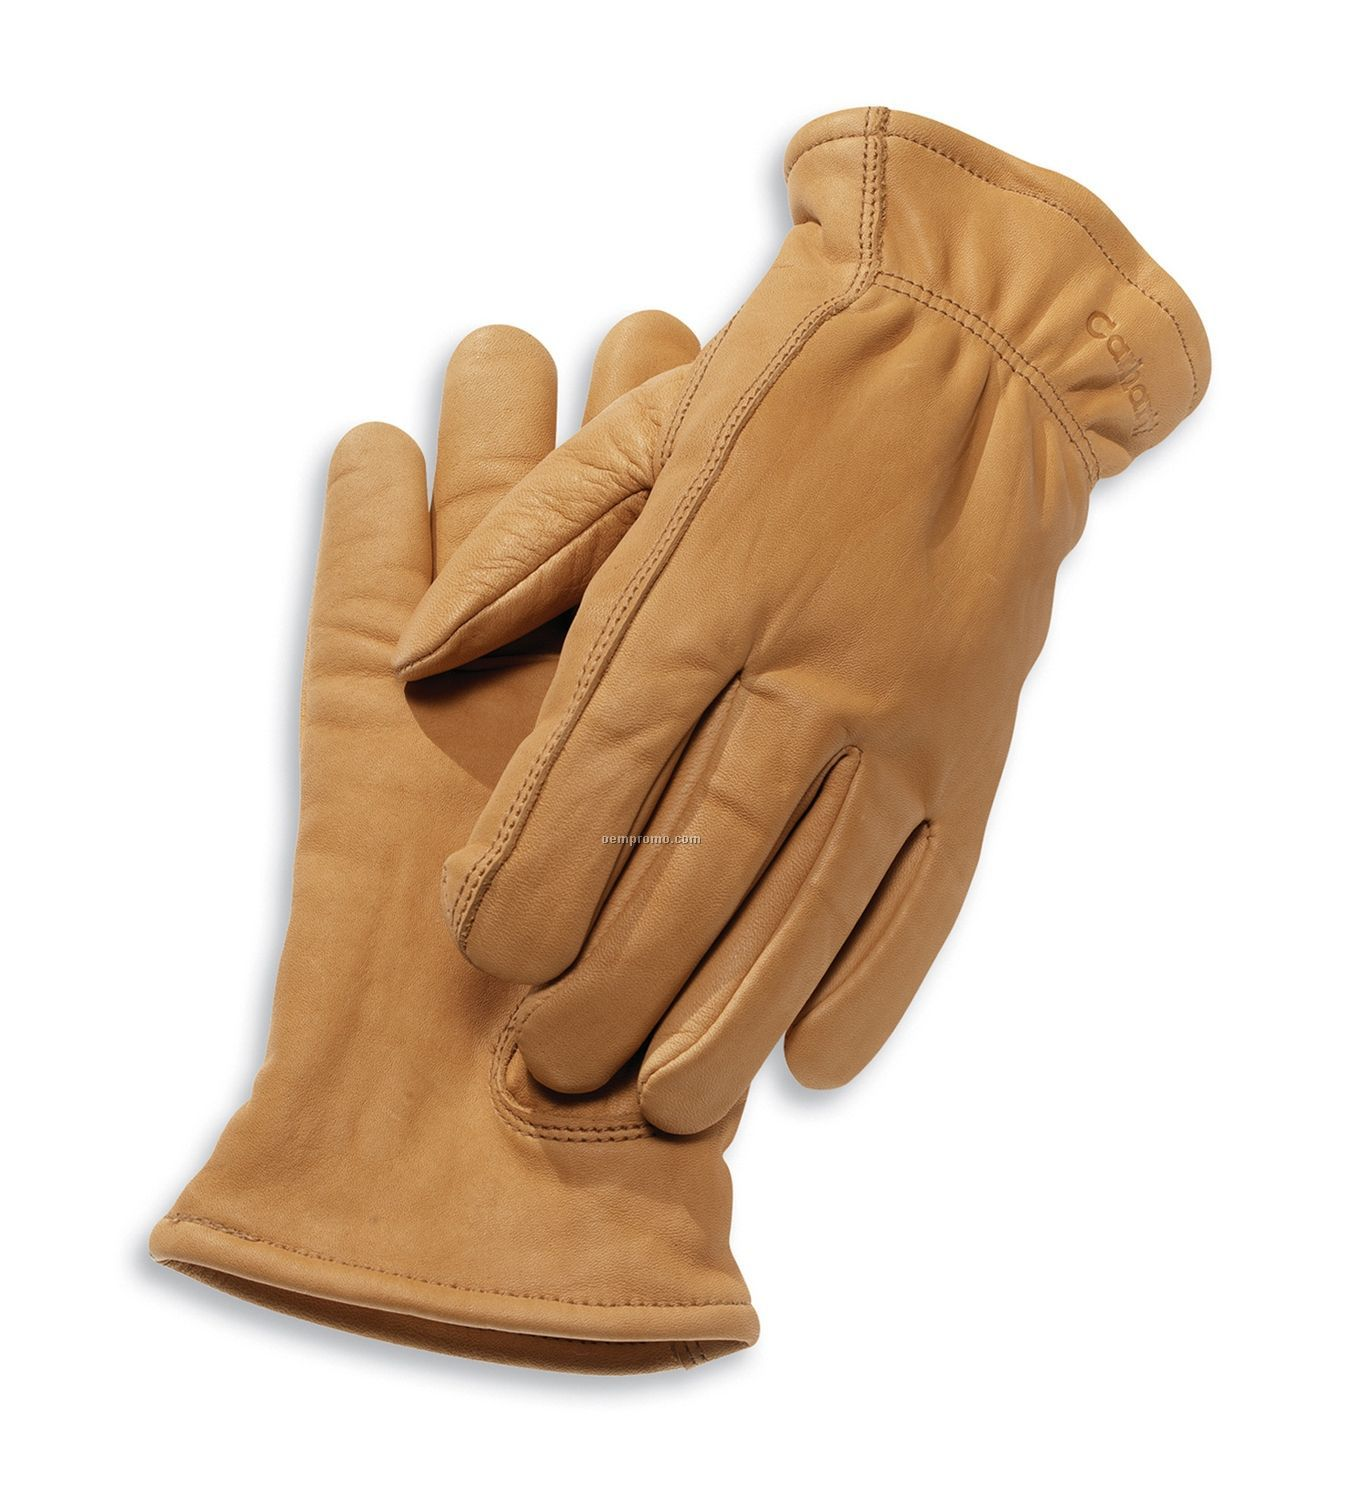 Thinsulate leather driving gloves - Carhartt Women S Insulated Leather Driver Gloves